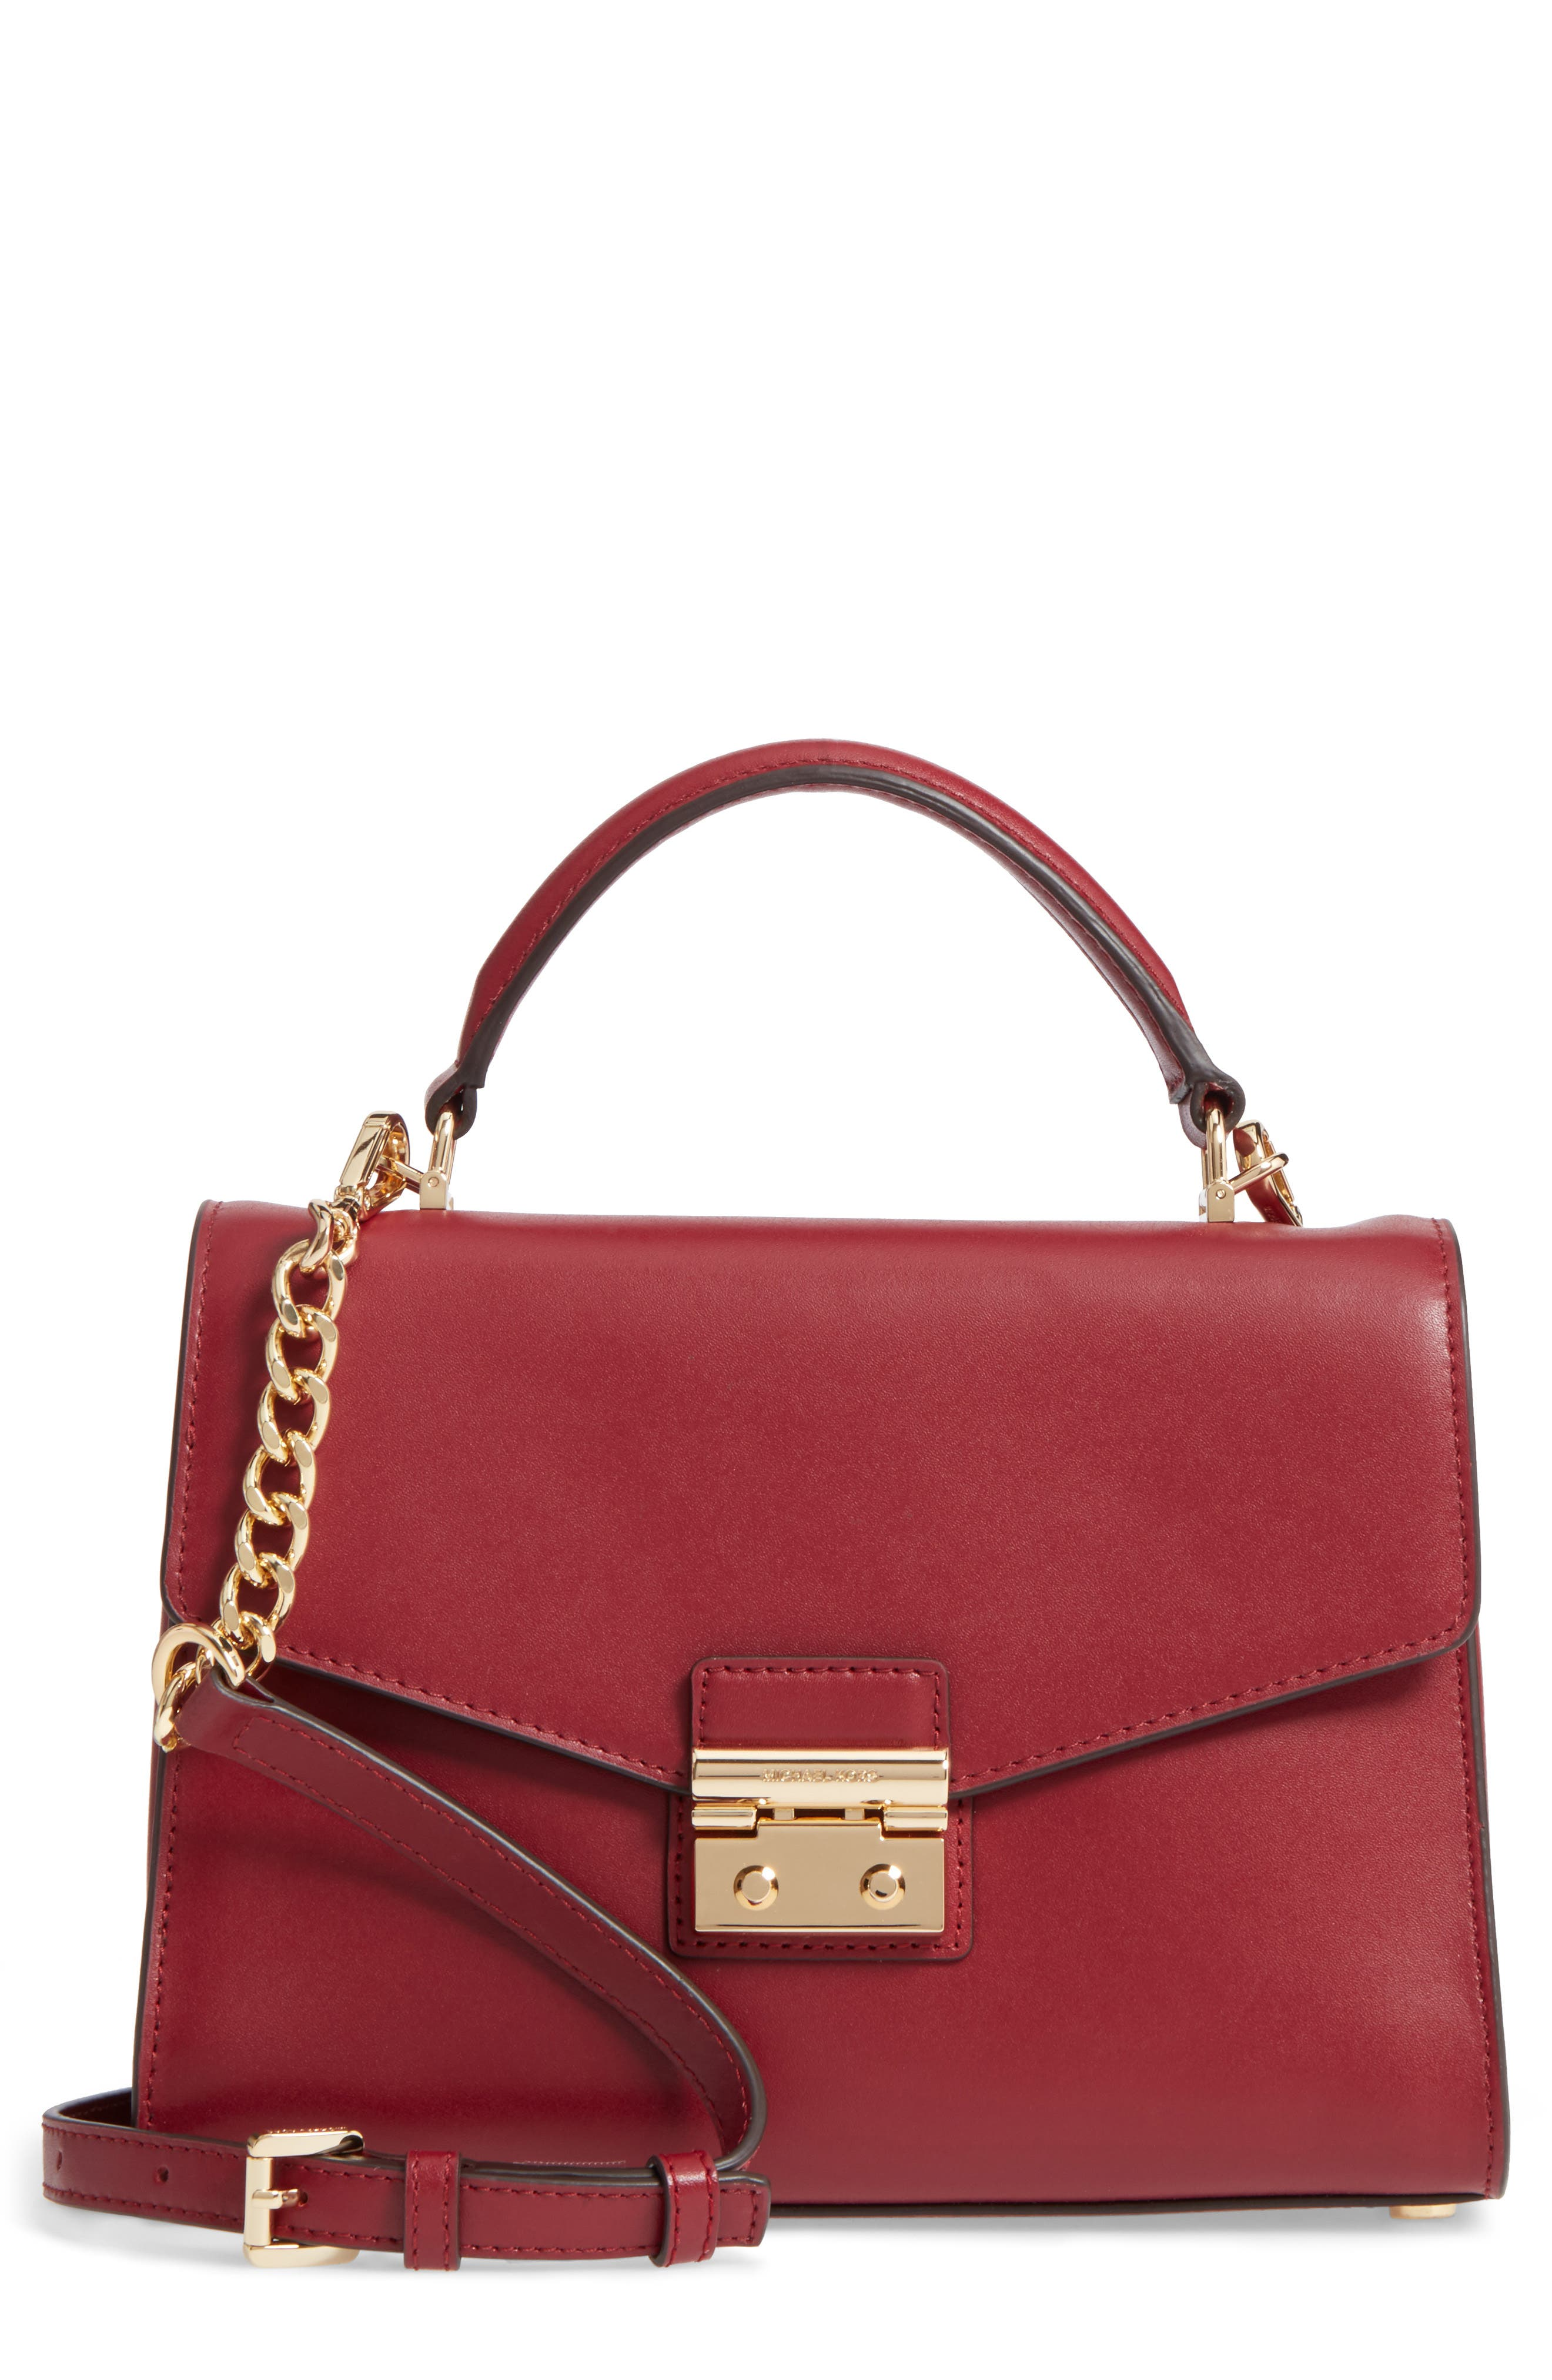 MICHAEL Michael Kors Medium Sloan Leather Satchel